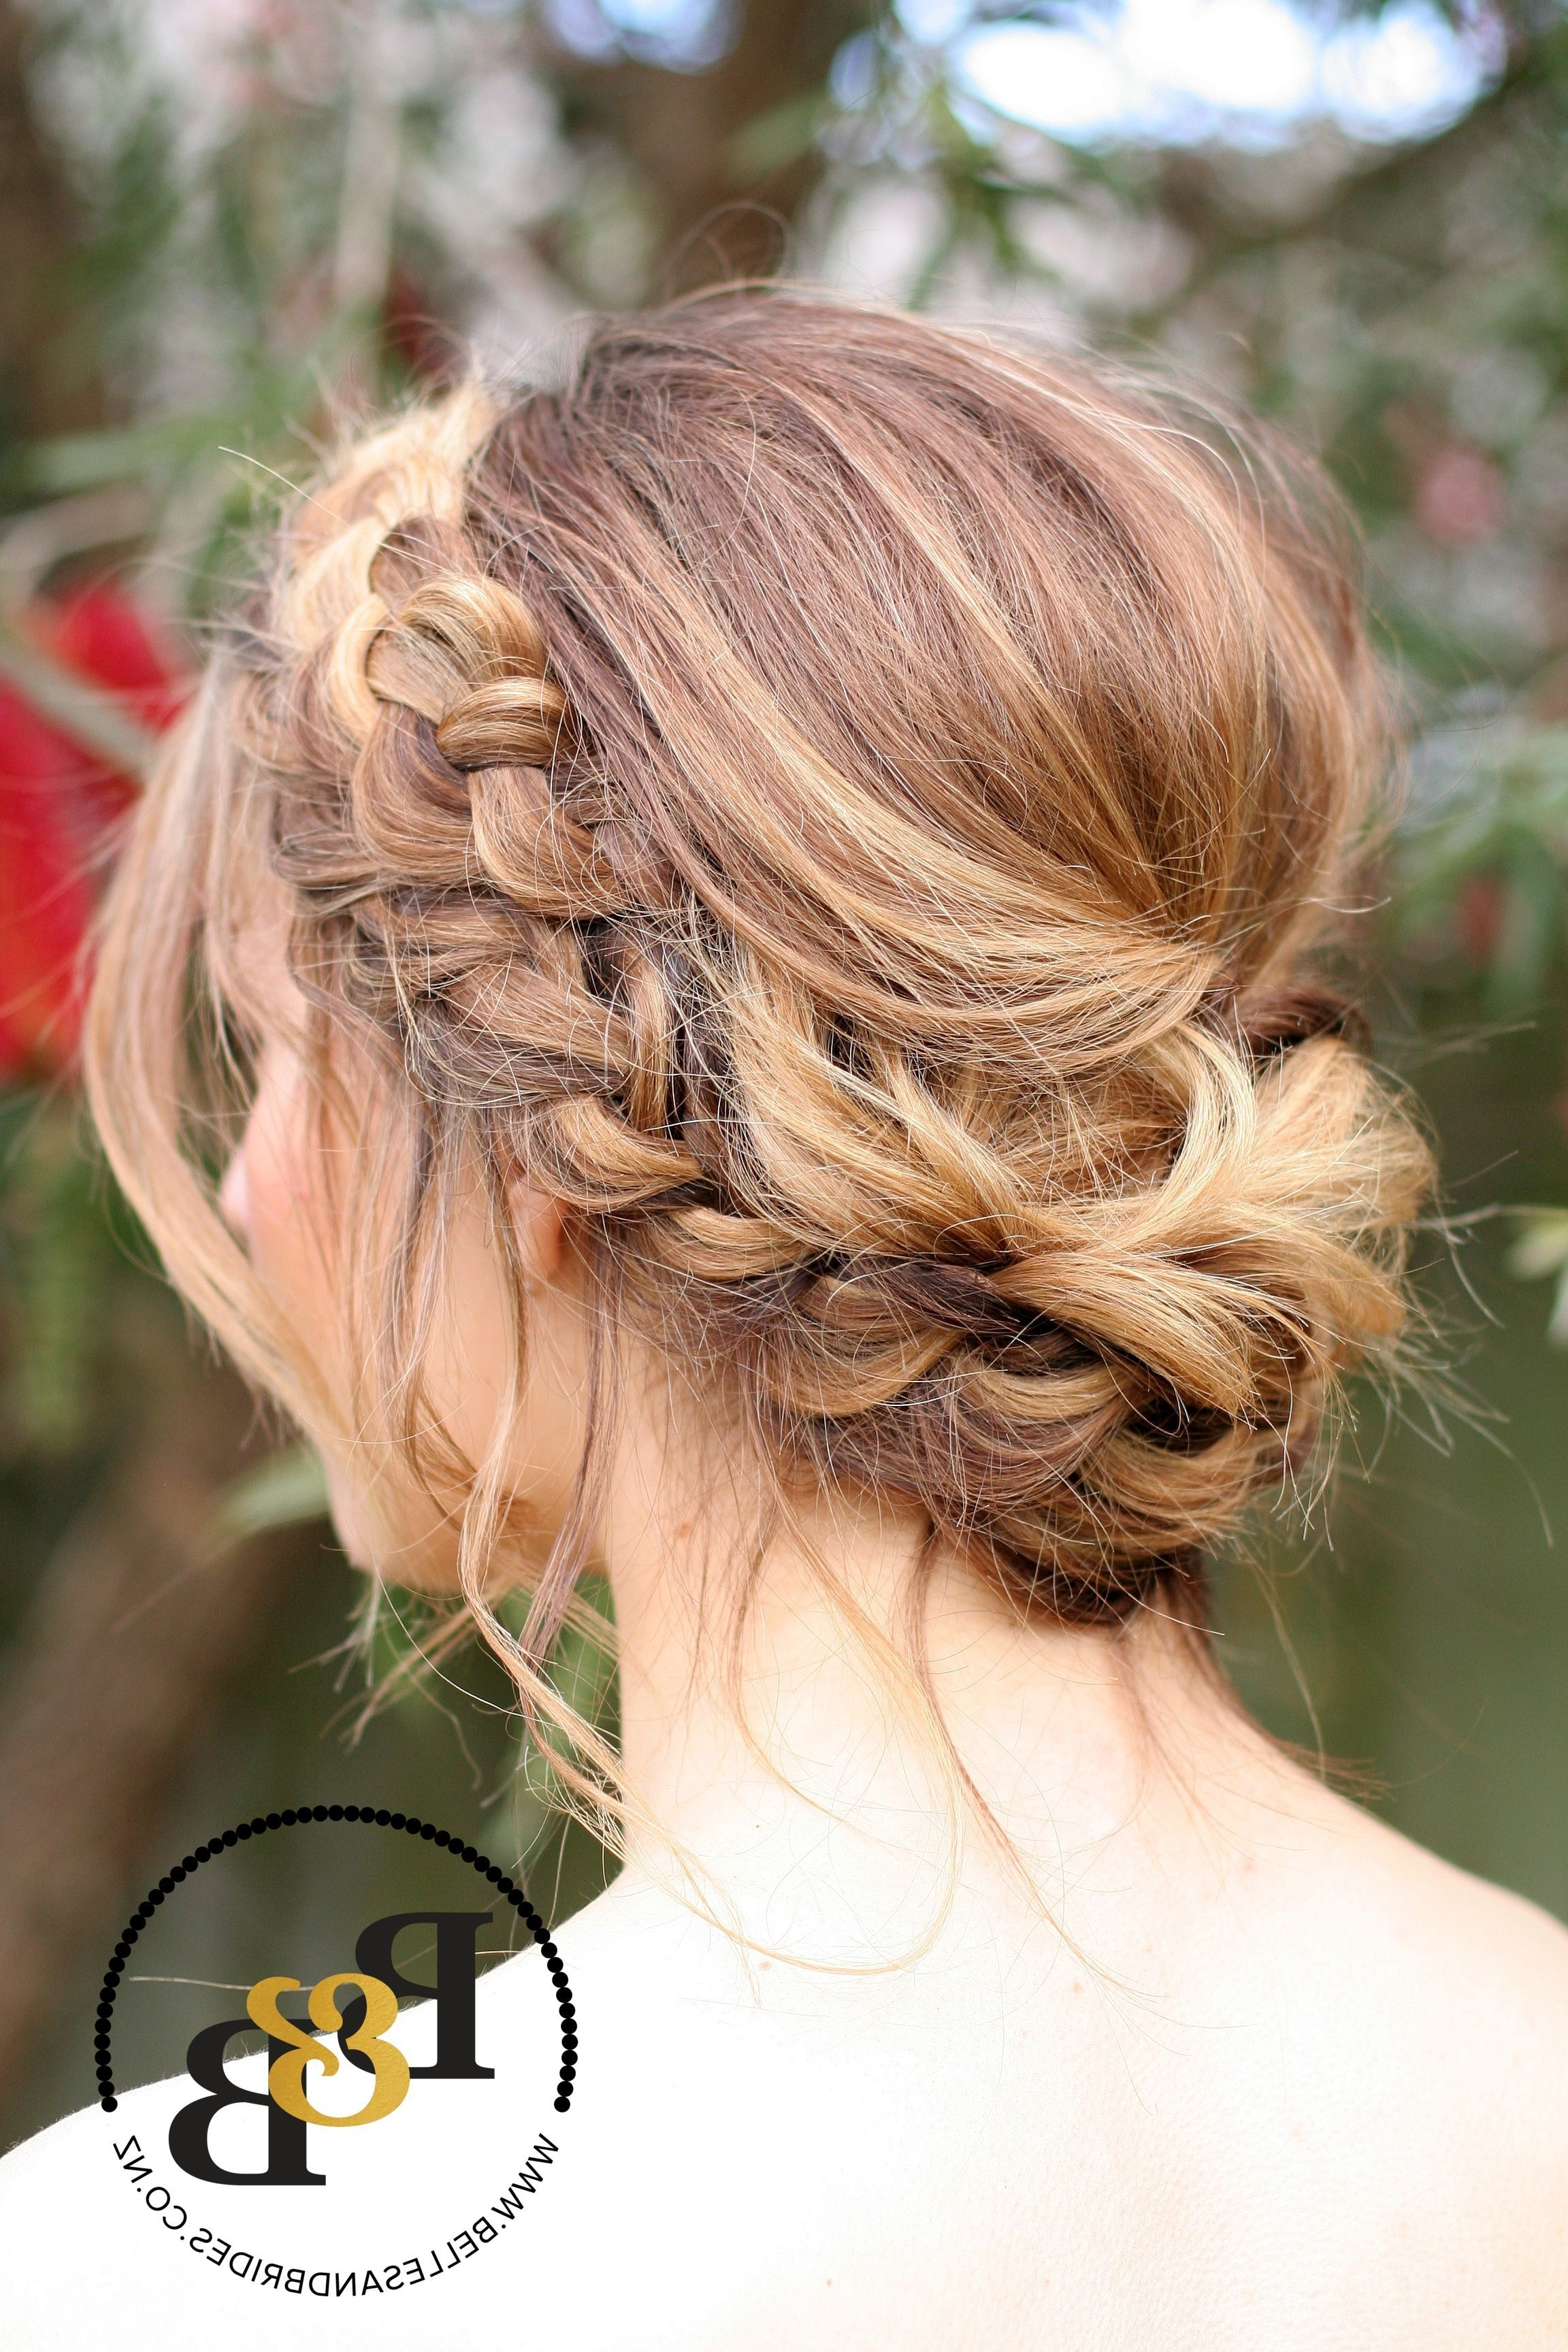 Wedding Hair With Braid / Messy Bridal Updo / Bridesmaids Hair With Regard To Most Current Messy Wedding Hairstyles For Long Hair (View 2 of 15)